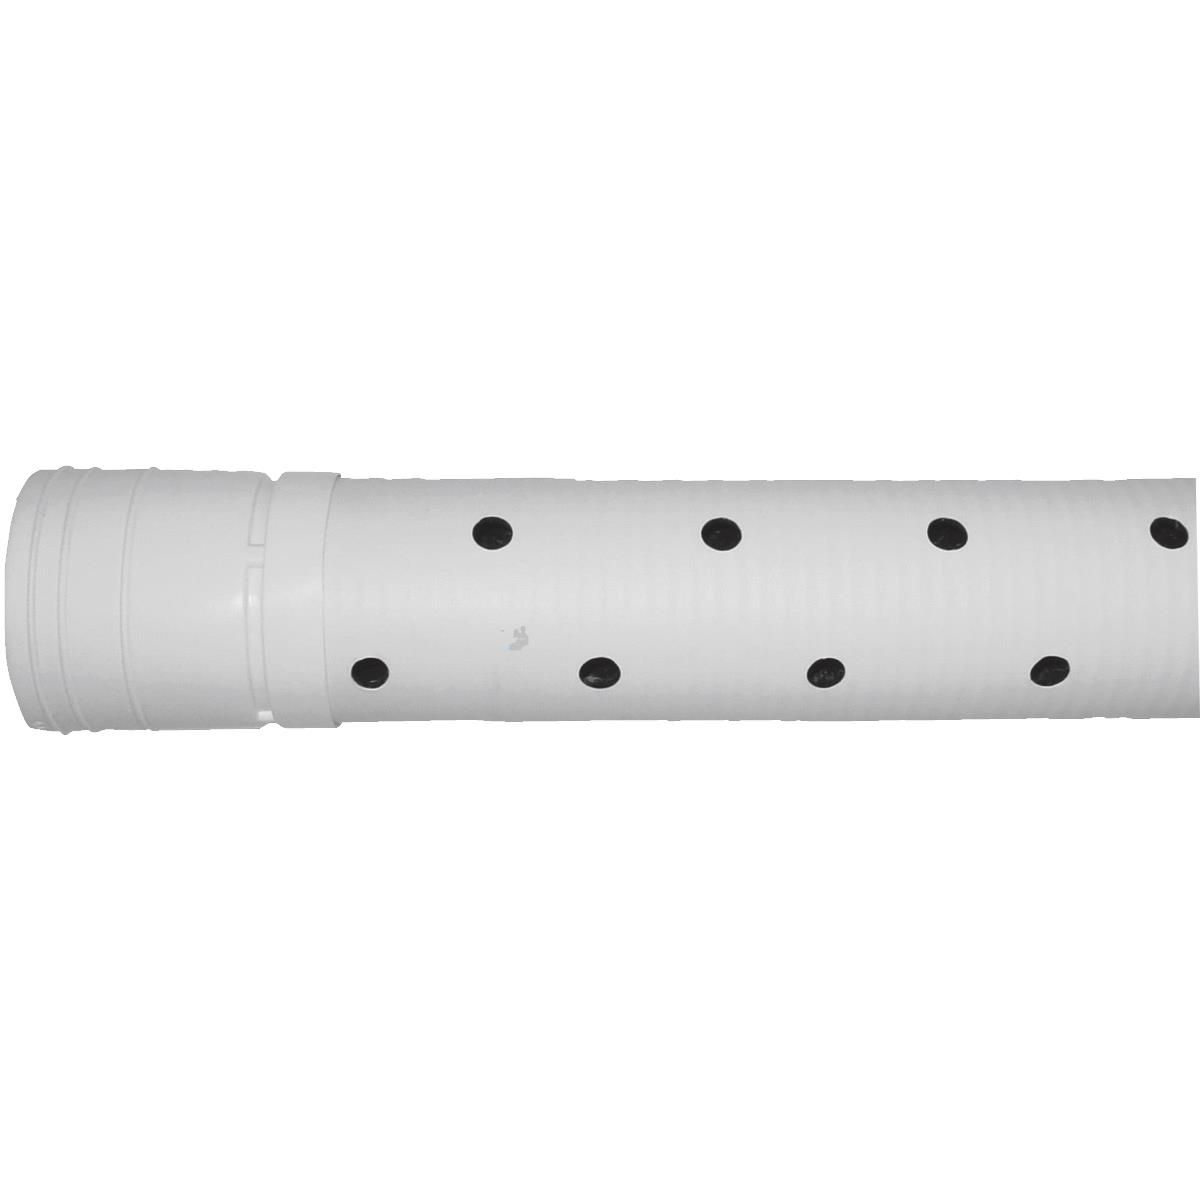 ADS Advanced Basement HDPE Perforated Drain & Sewer Pipe